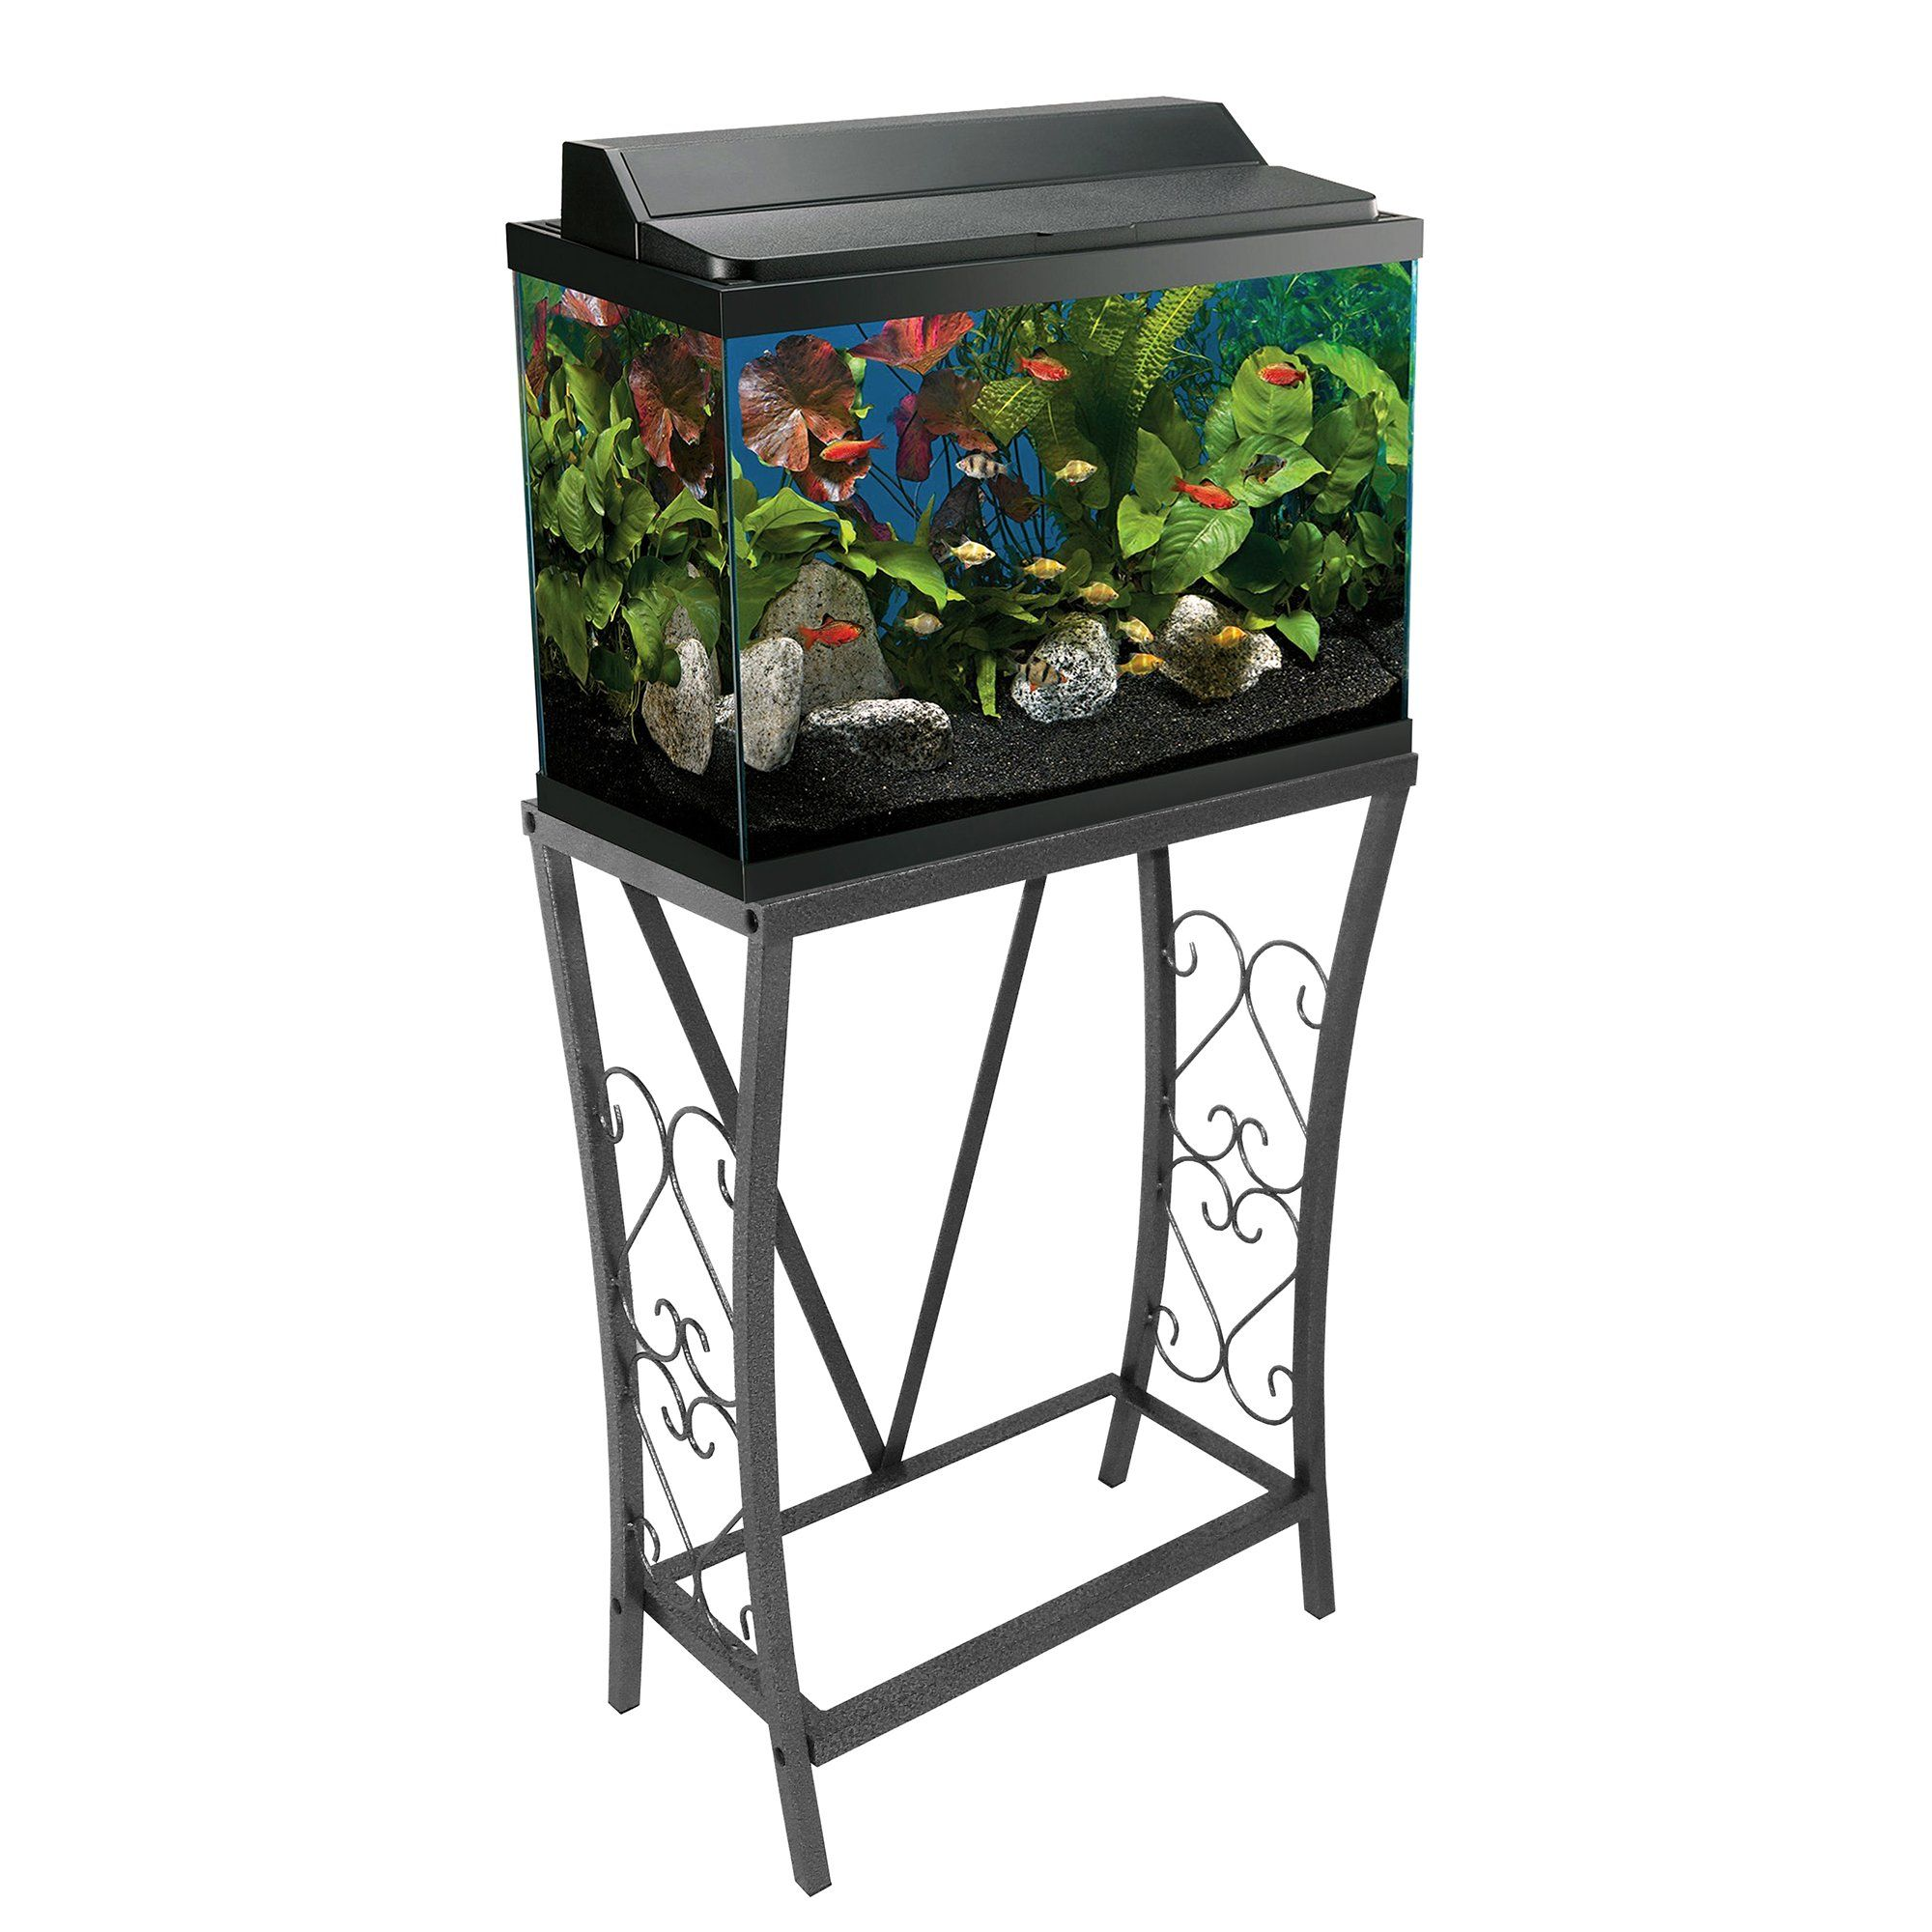 Aquatic Fundamentals Silver Vein Scroll Aquarium Stand 10 Gal Petco Store Aquarium Stand Fish Tank Stand Best Aquarium Fish